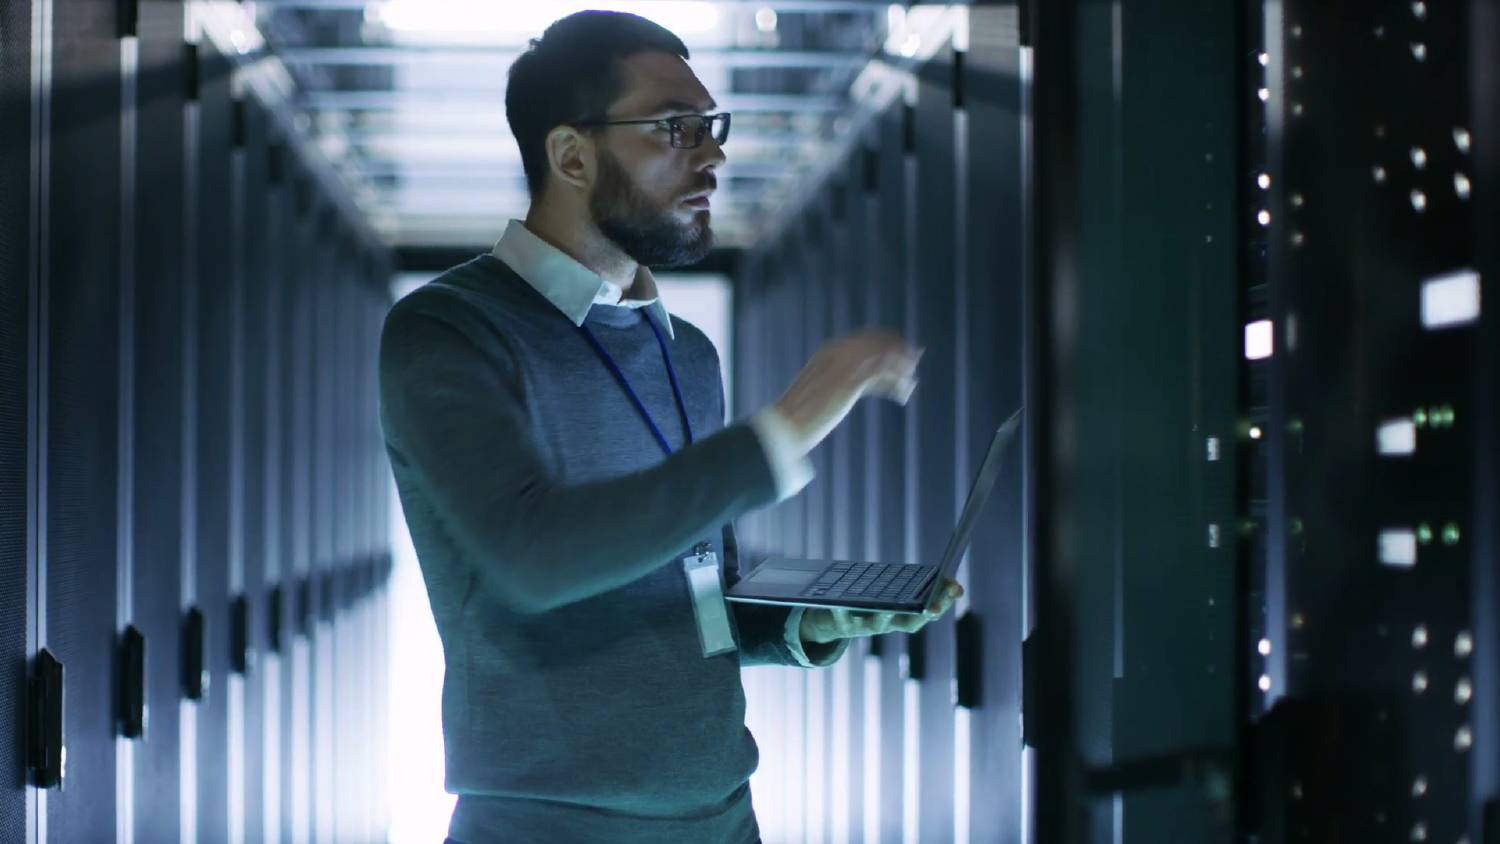 Man in server room, concept of data lake